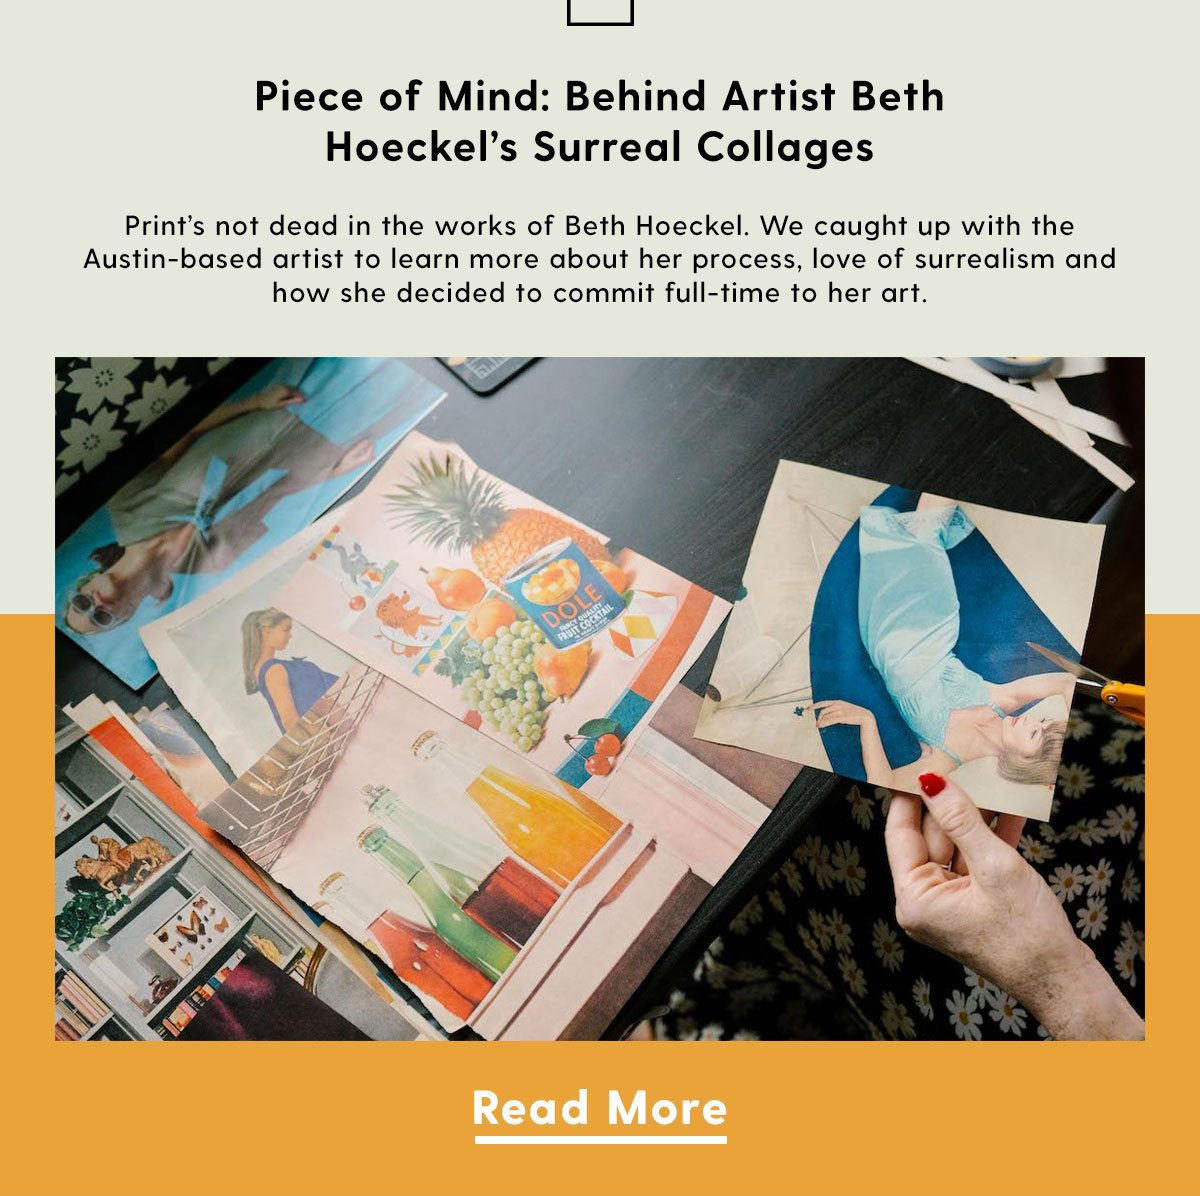 Piece of Mind: Behind Artist Beth Hoeckel's Surreal Collages | Print's not dead in the works of Beth Hoeckel. We caught up with the Austin-based artist to learn more about her process, love of surrealism and how she decided to commit full-time to her art.